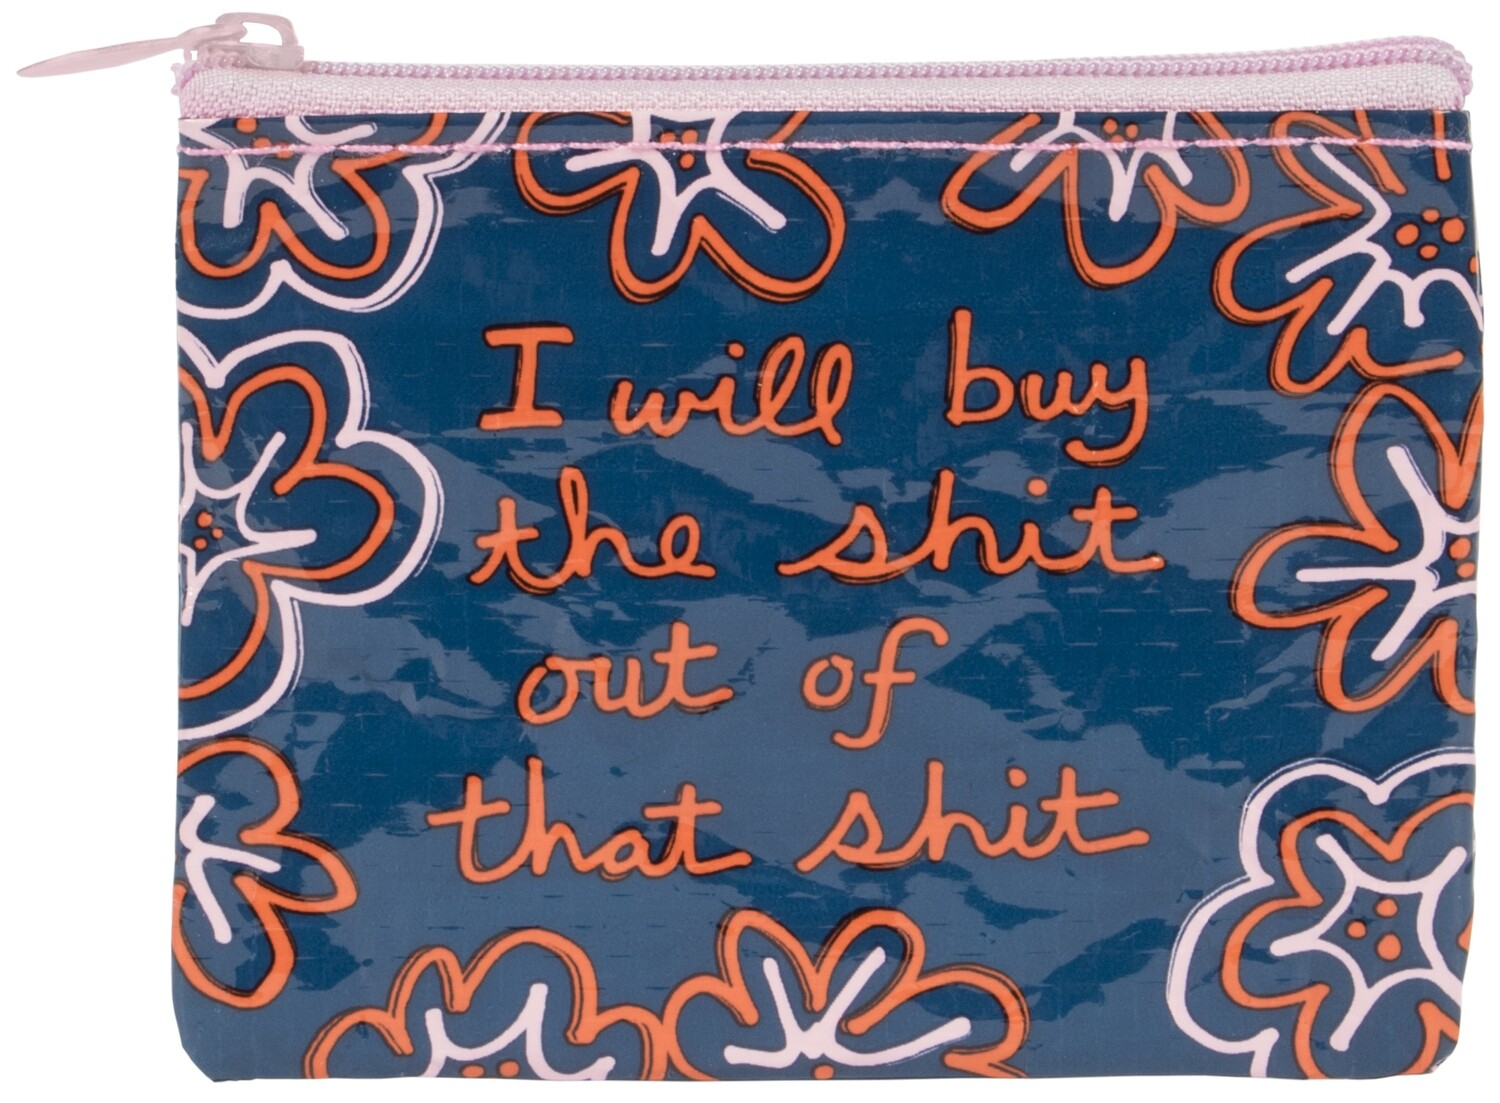 I Will Buy The Sh*t Out Of That Sh*t coin purse